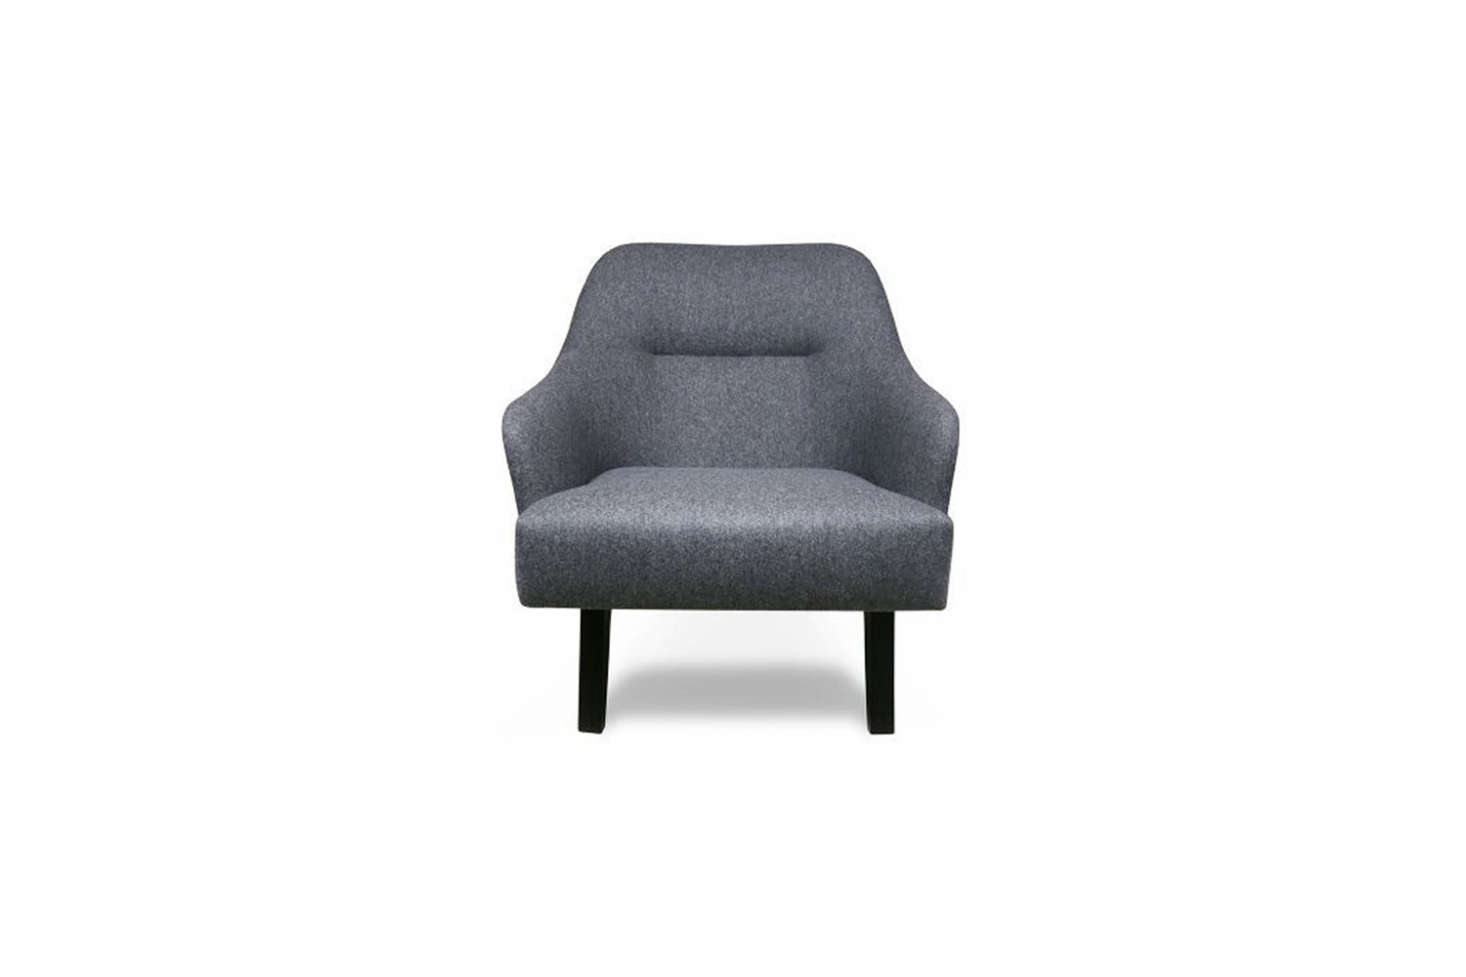 The velvet armchairs were made for the hotel by Alter London. The closest match, in shape, is Alter London's Shawfield Upholstered Chair.